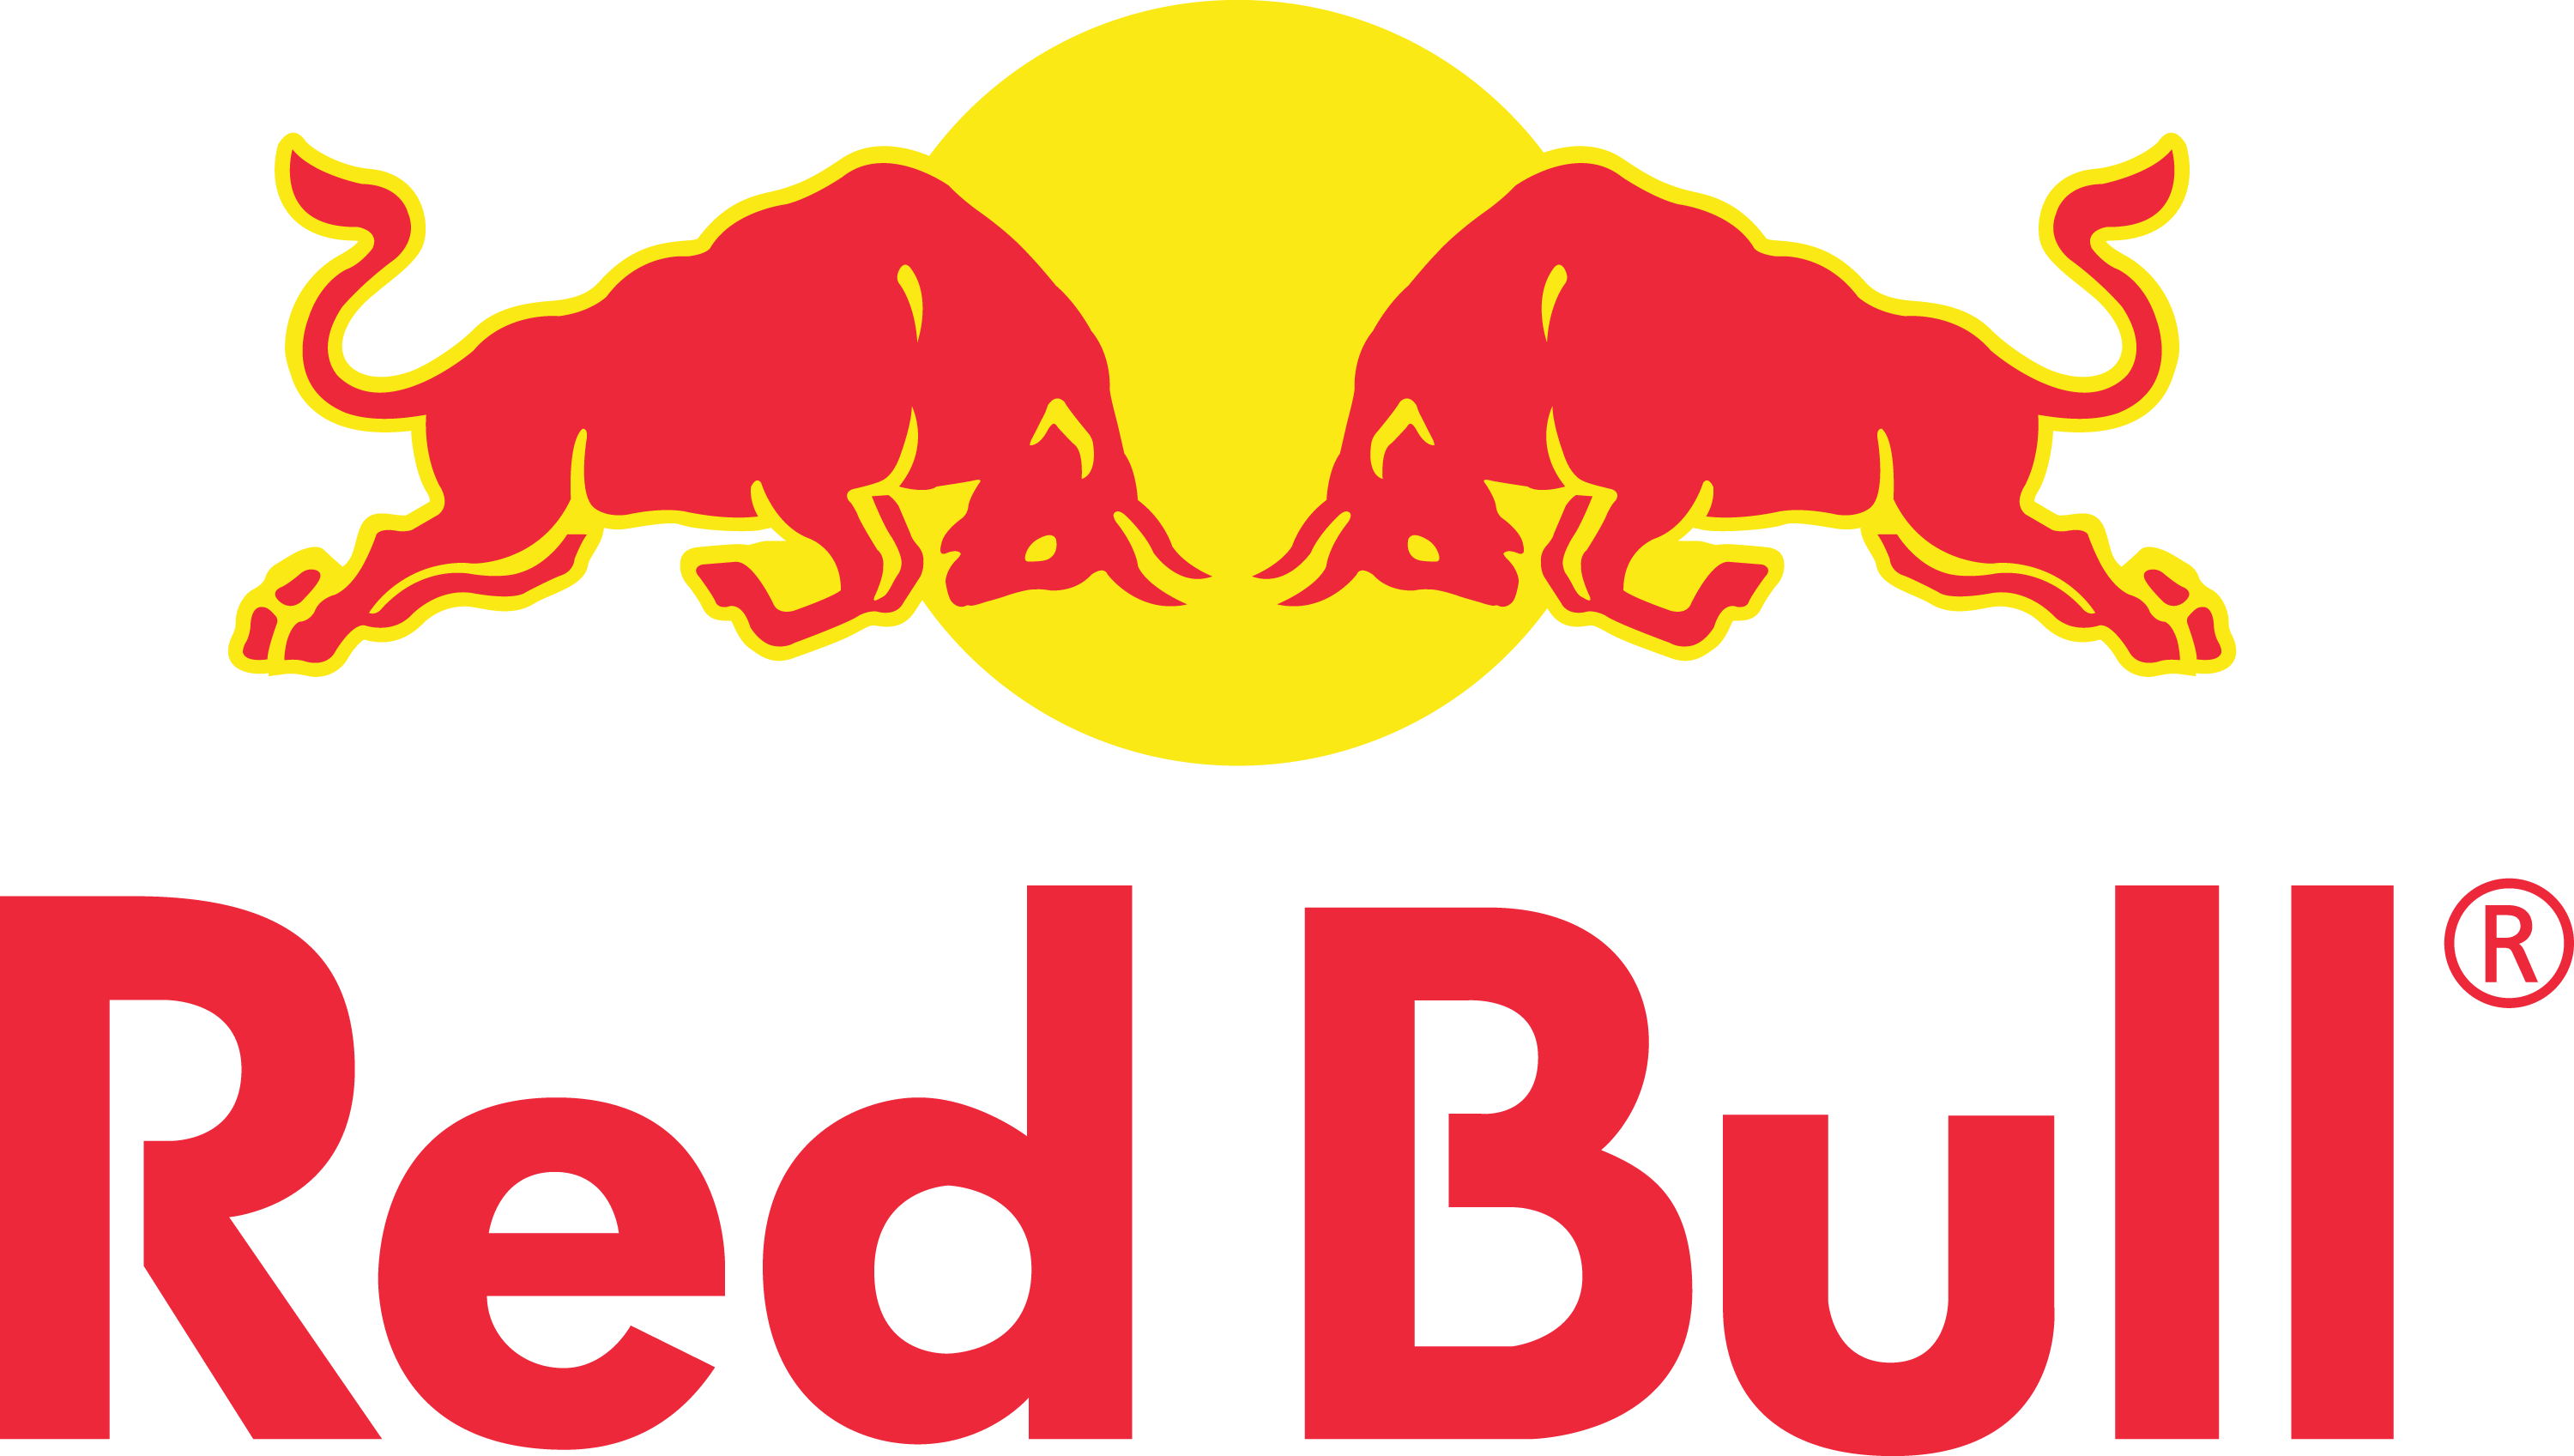 Red Bull - 5 Social Media Campaigns to Learn From | Digital Marketing Institute